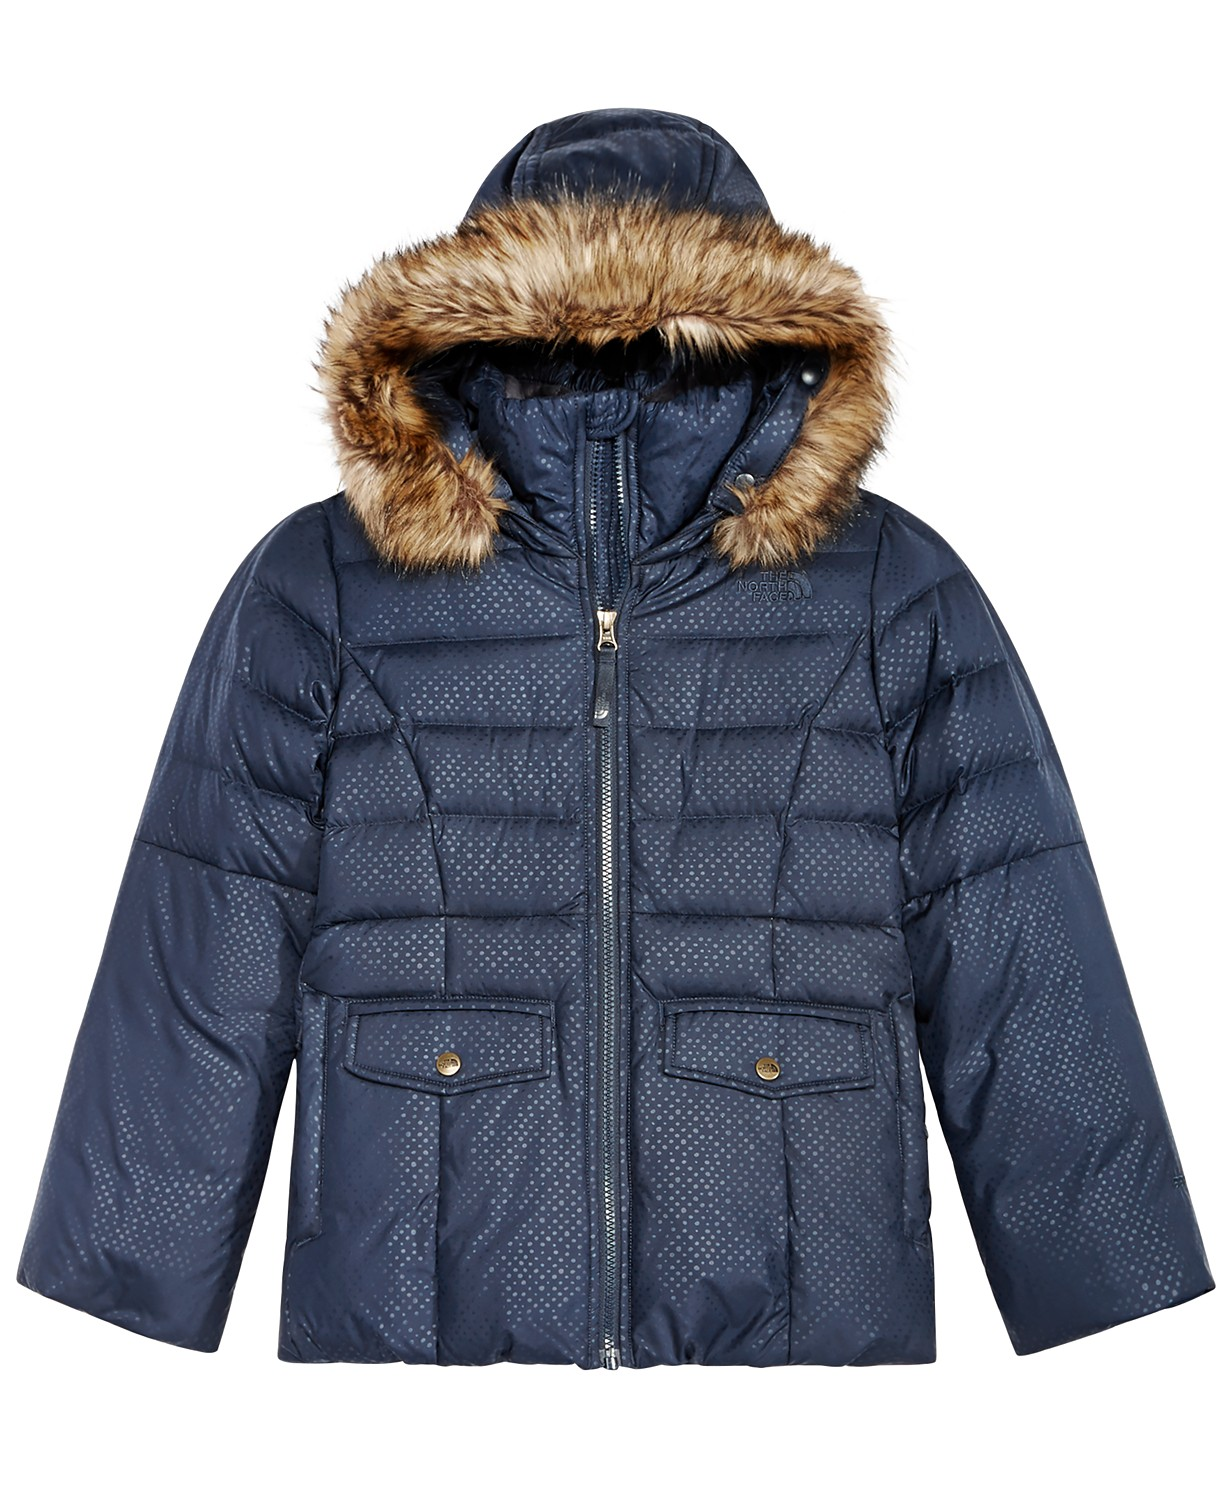 88f25e1f9bf776 UPDATE  SOLD OUT!! Macy s has select The North Face coats   jackets on SALE  with HUGE savings today! Plus